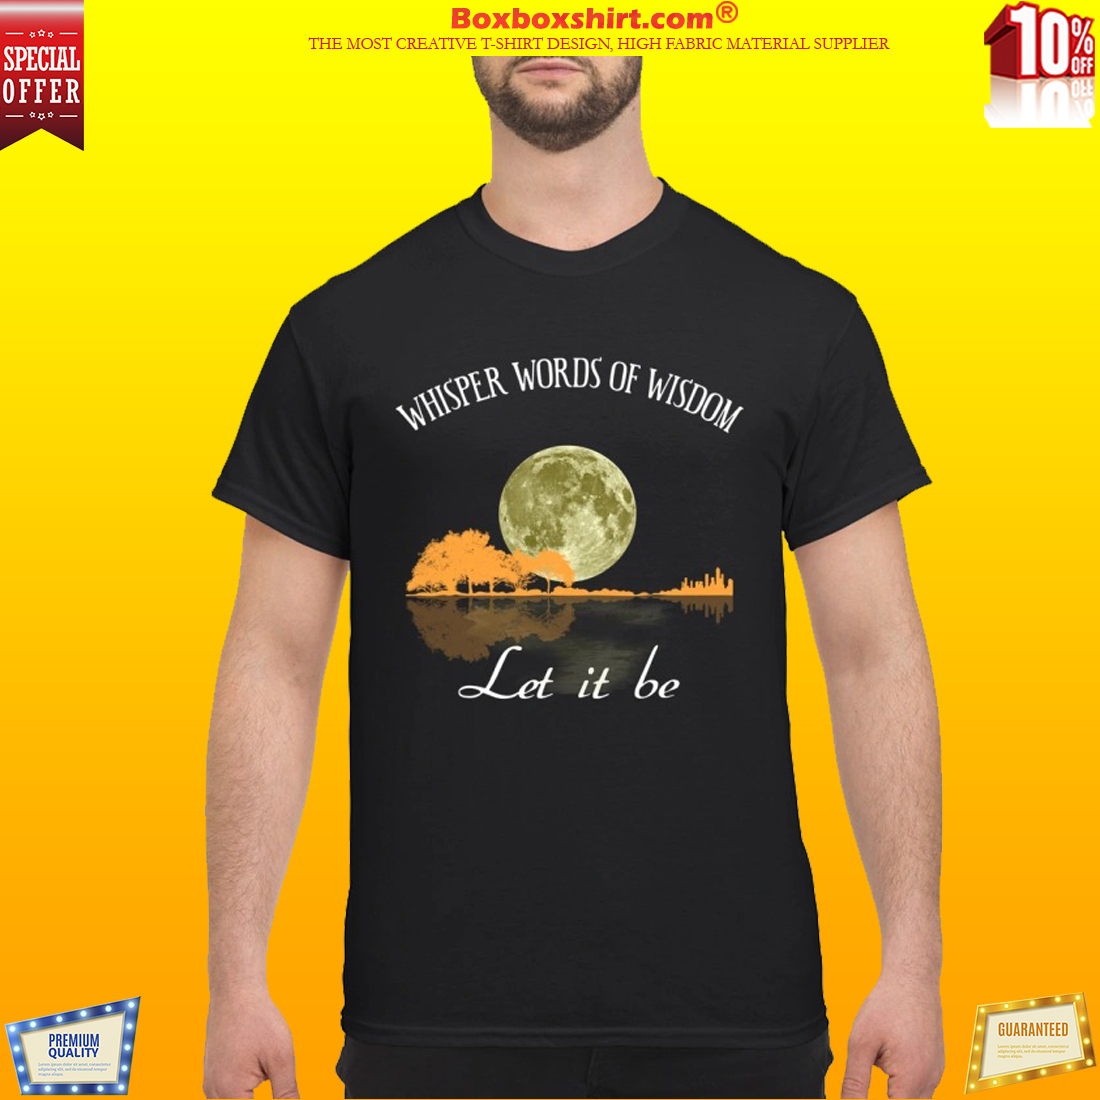 Guitar and moon whisper words of wisdom let it be shirt